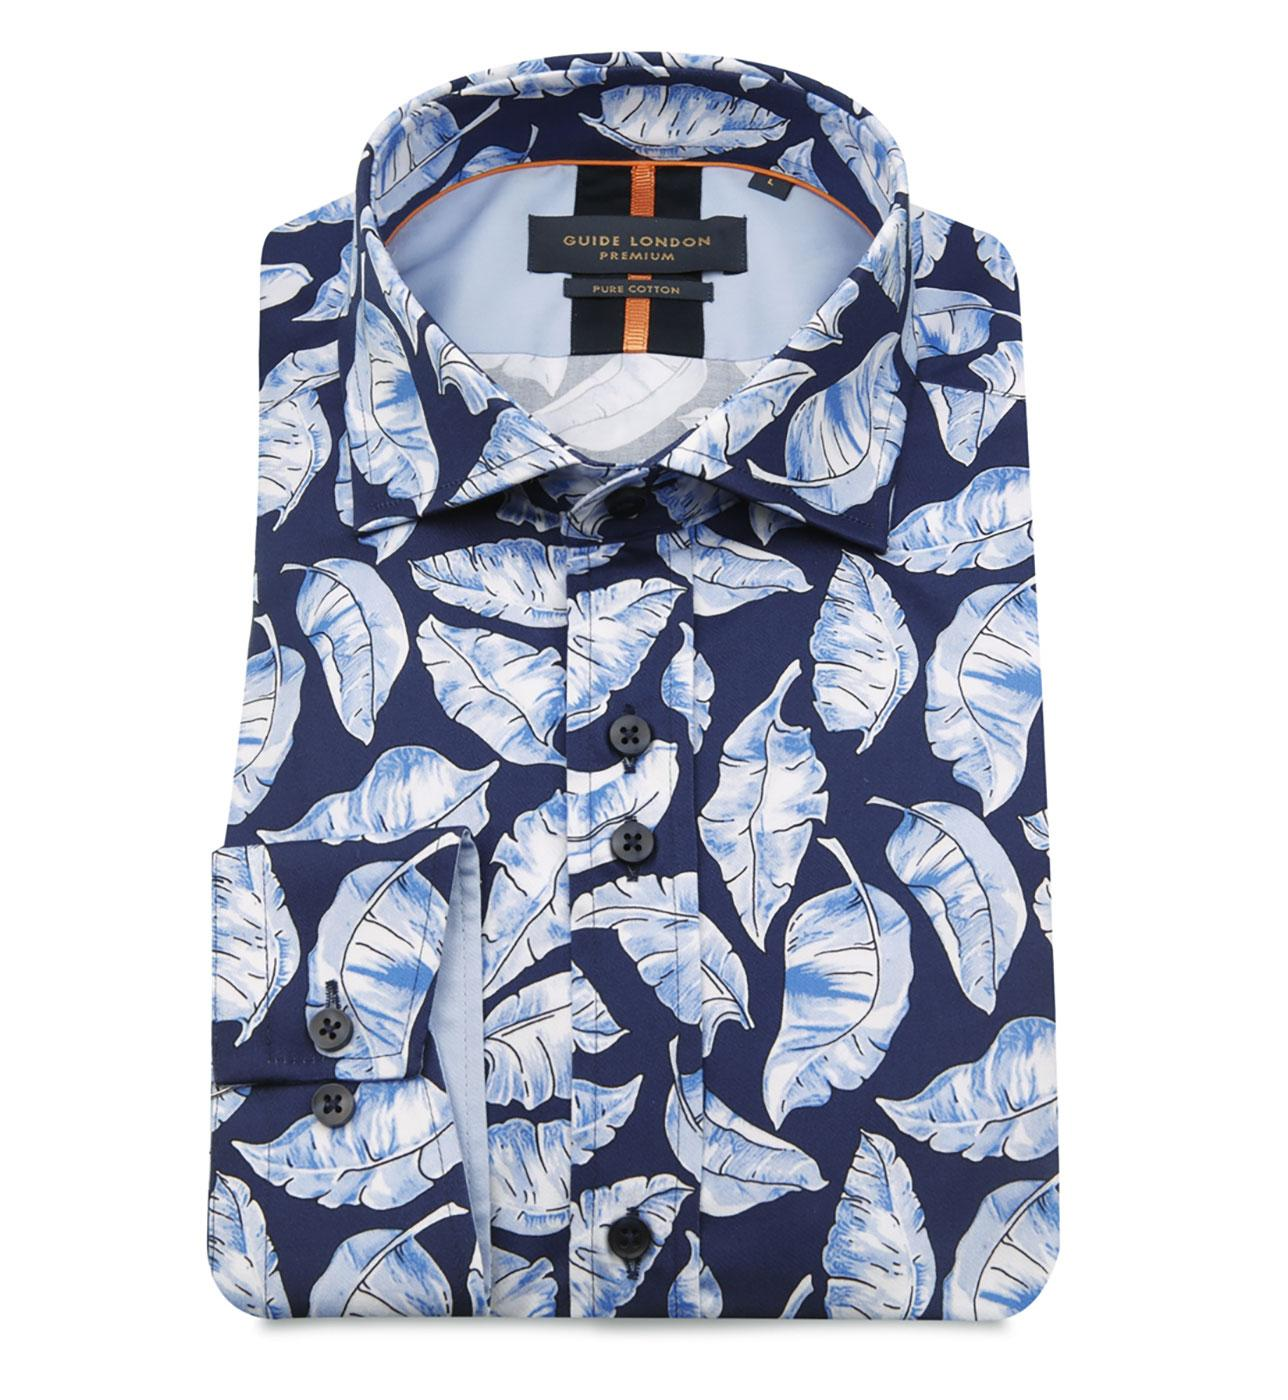 GUIDE LONDON Retro 70s Palm Leaf Print Shirt (Sky)